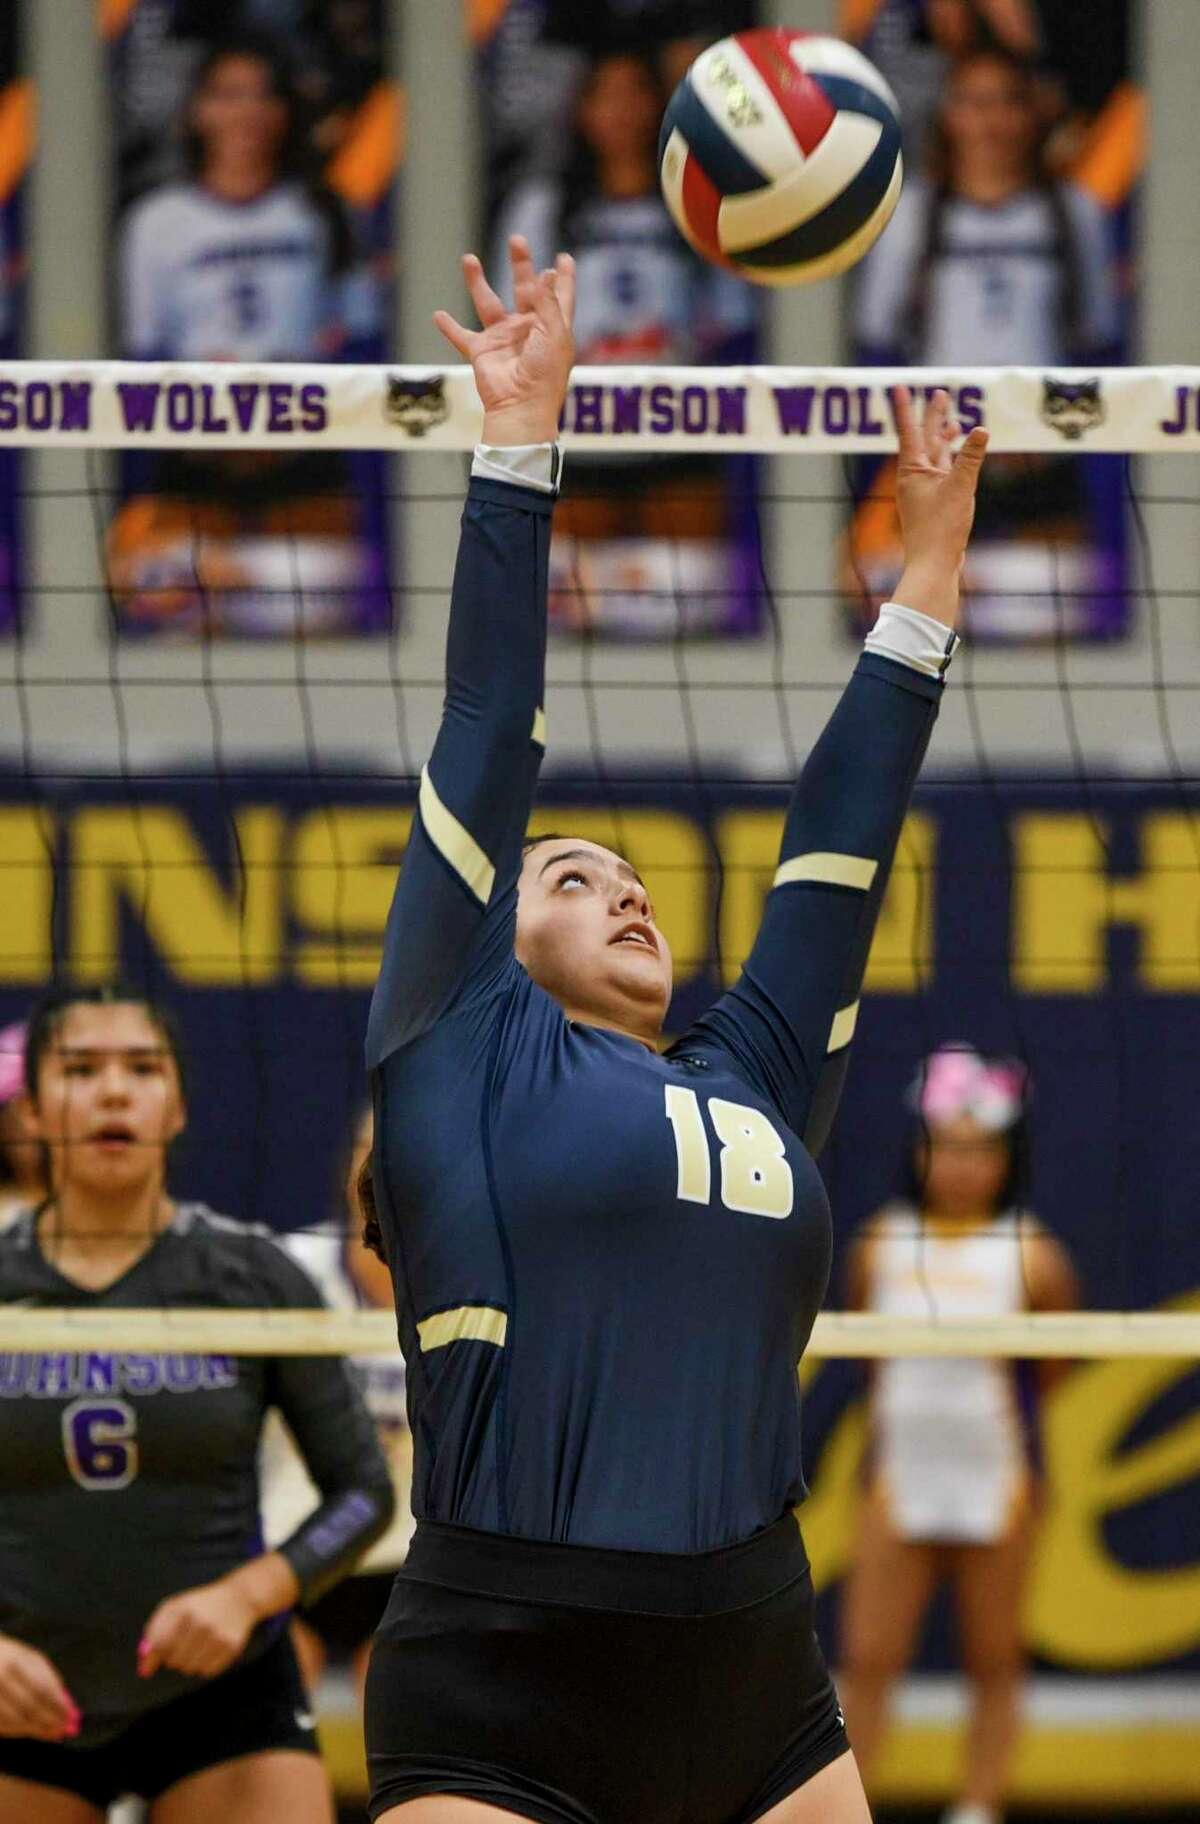 Rebekah Bustamante will represent Alexander one last time in the InkByrd Designs Volleyball All-Star game at 6:30 p.m. Thursday at the main Boys & Girls Club.